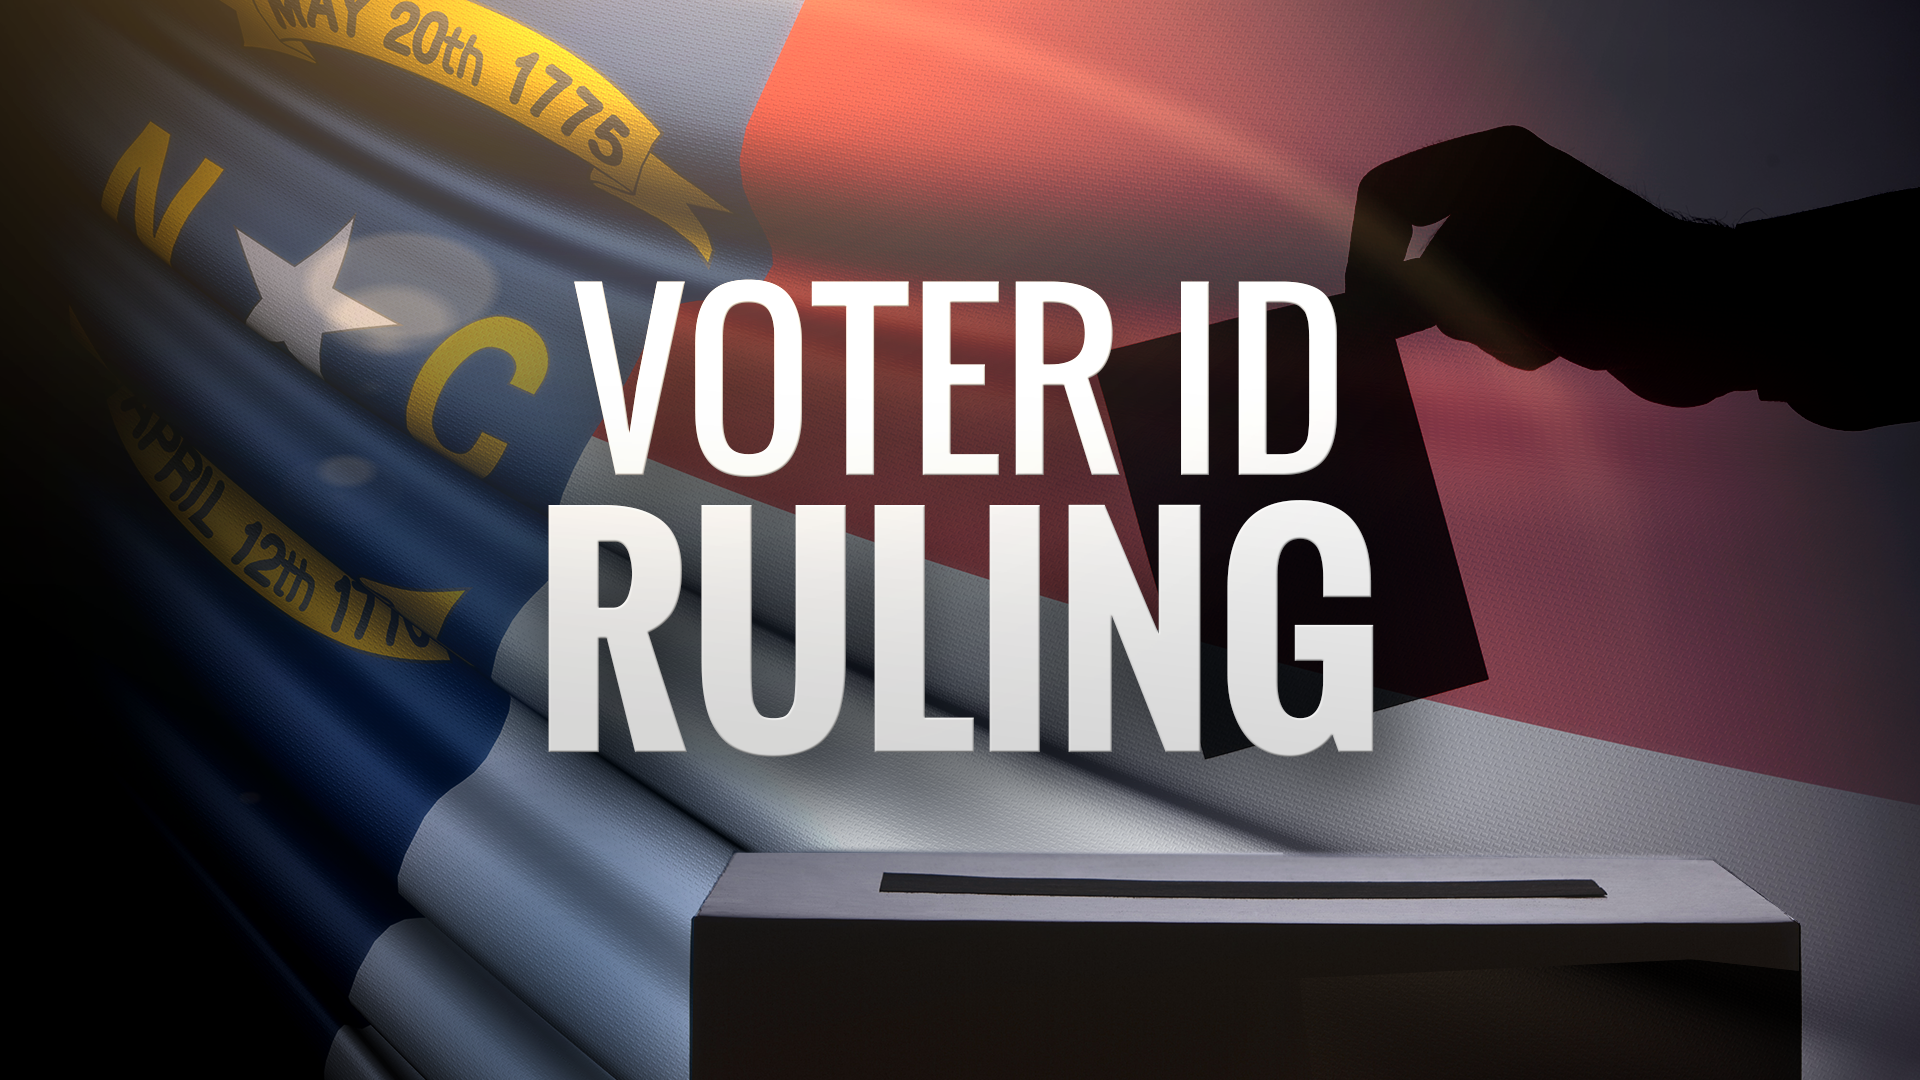 SCOTUS rejects appeal over NC voter ID law